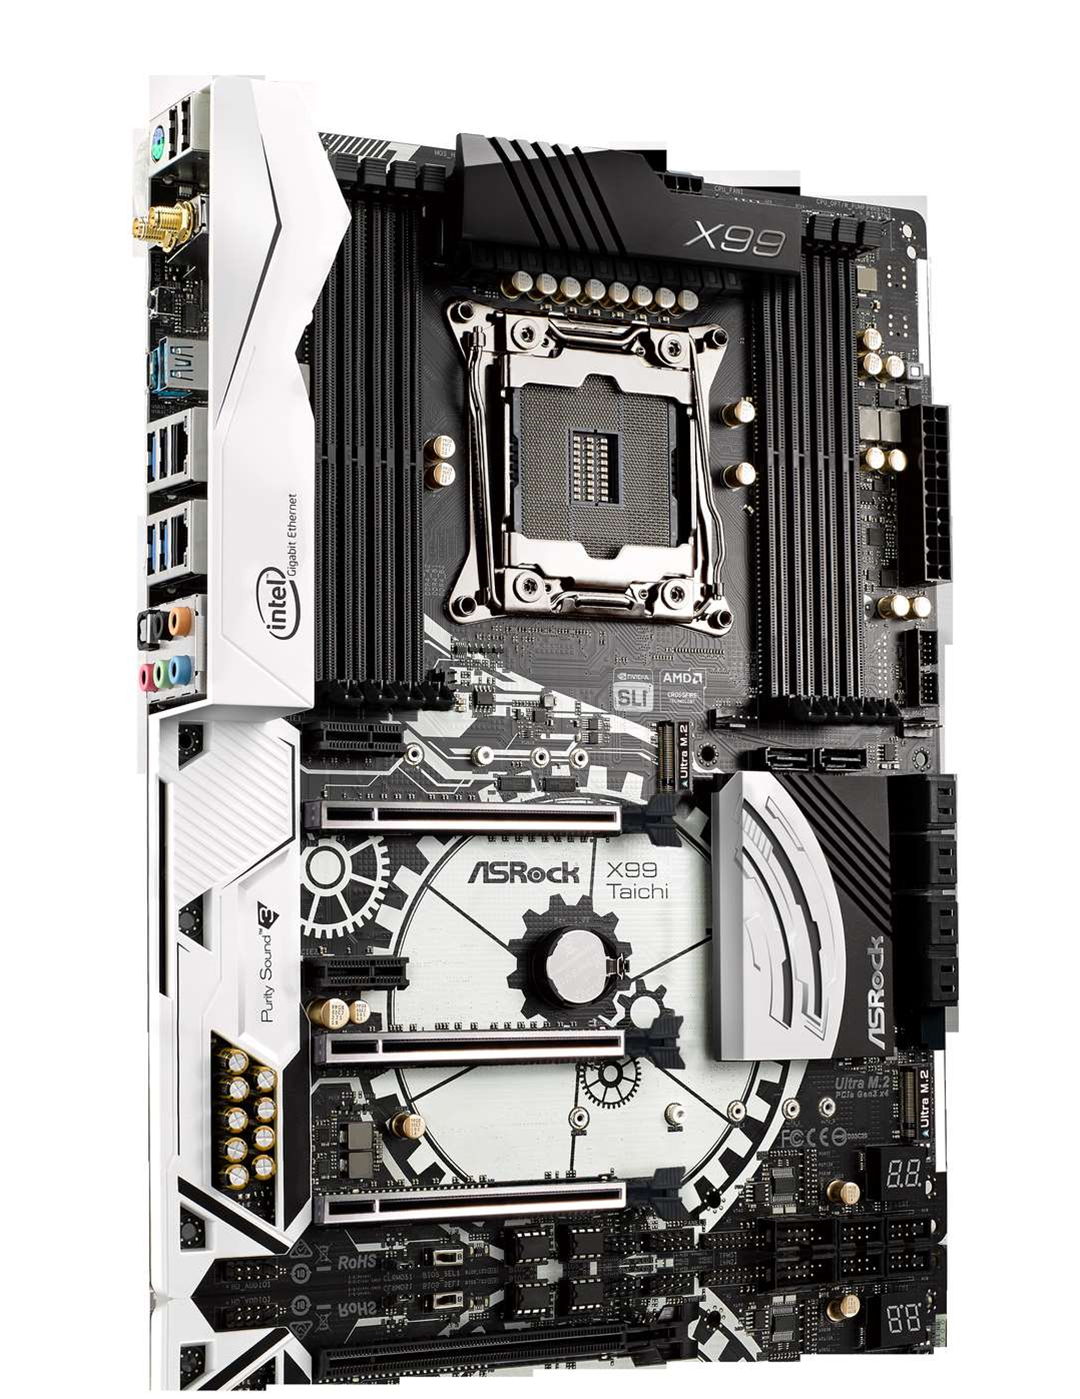 Asrock releases a whole mess of stuff at Computex - motherboards, VR systems, and even... lightbulbs